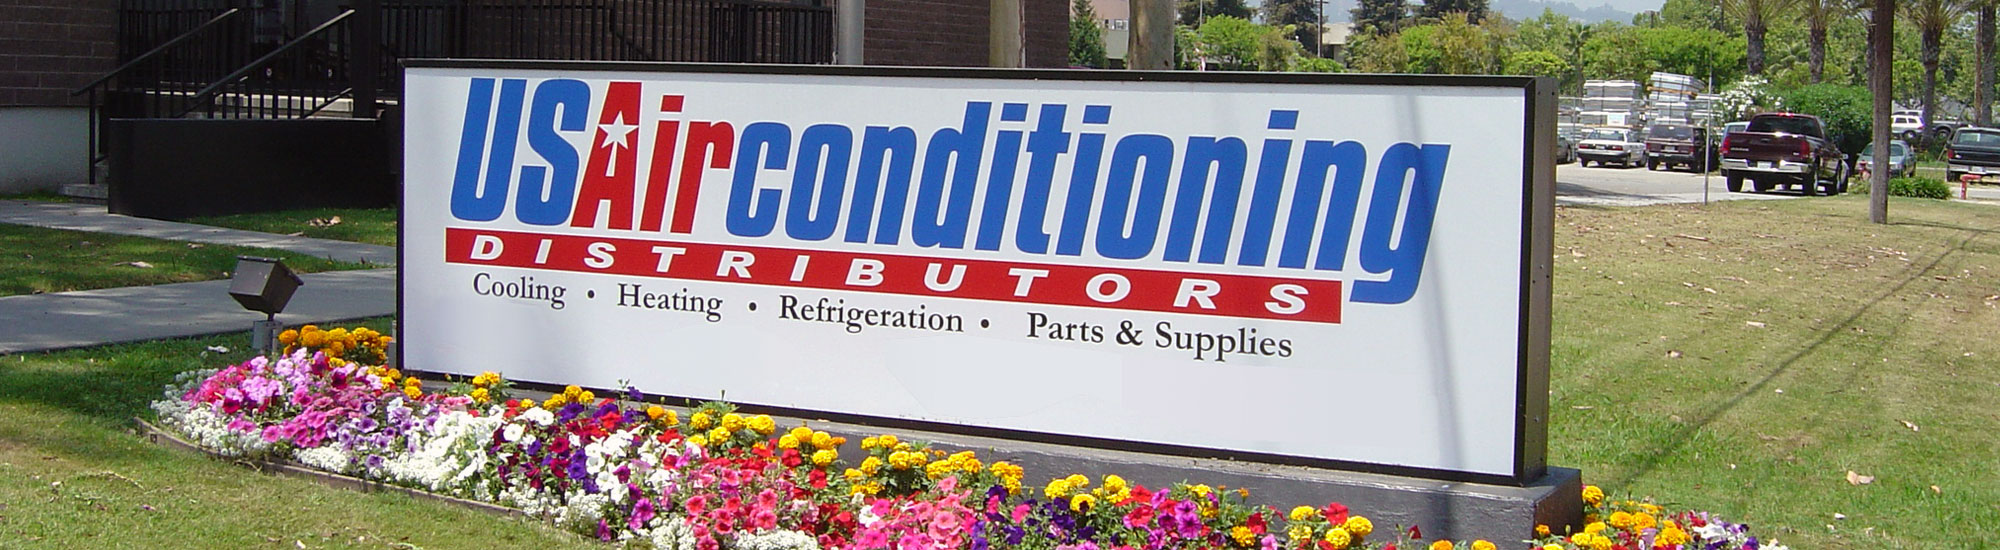 US Air Conditioning Distributors California Arizona Nevada